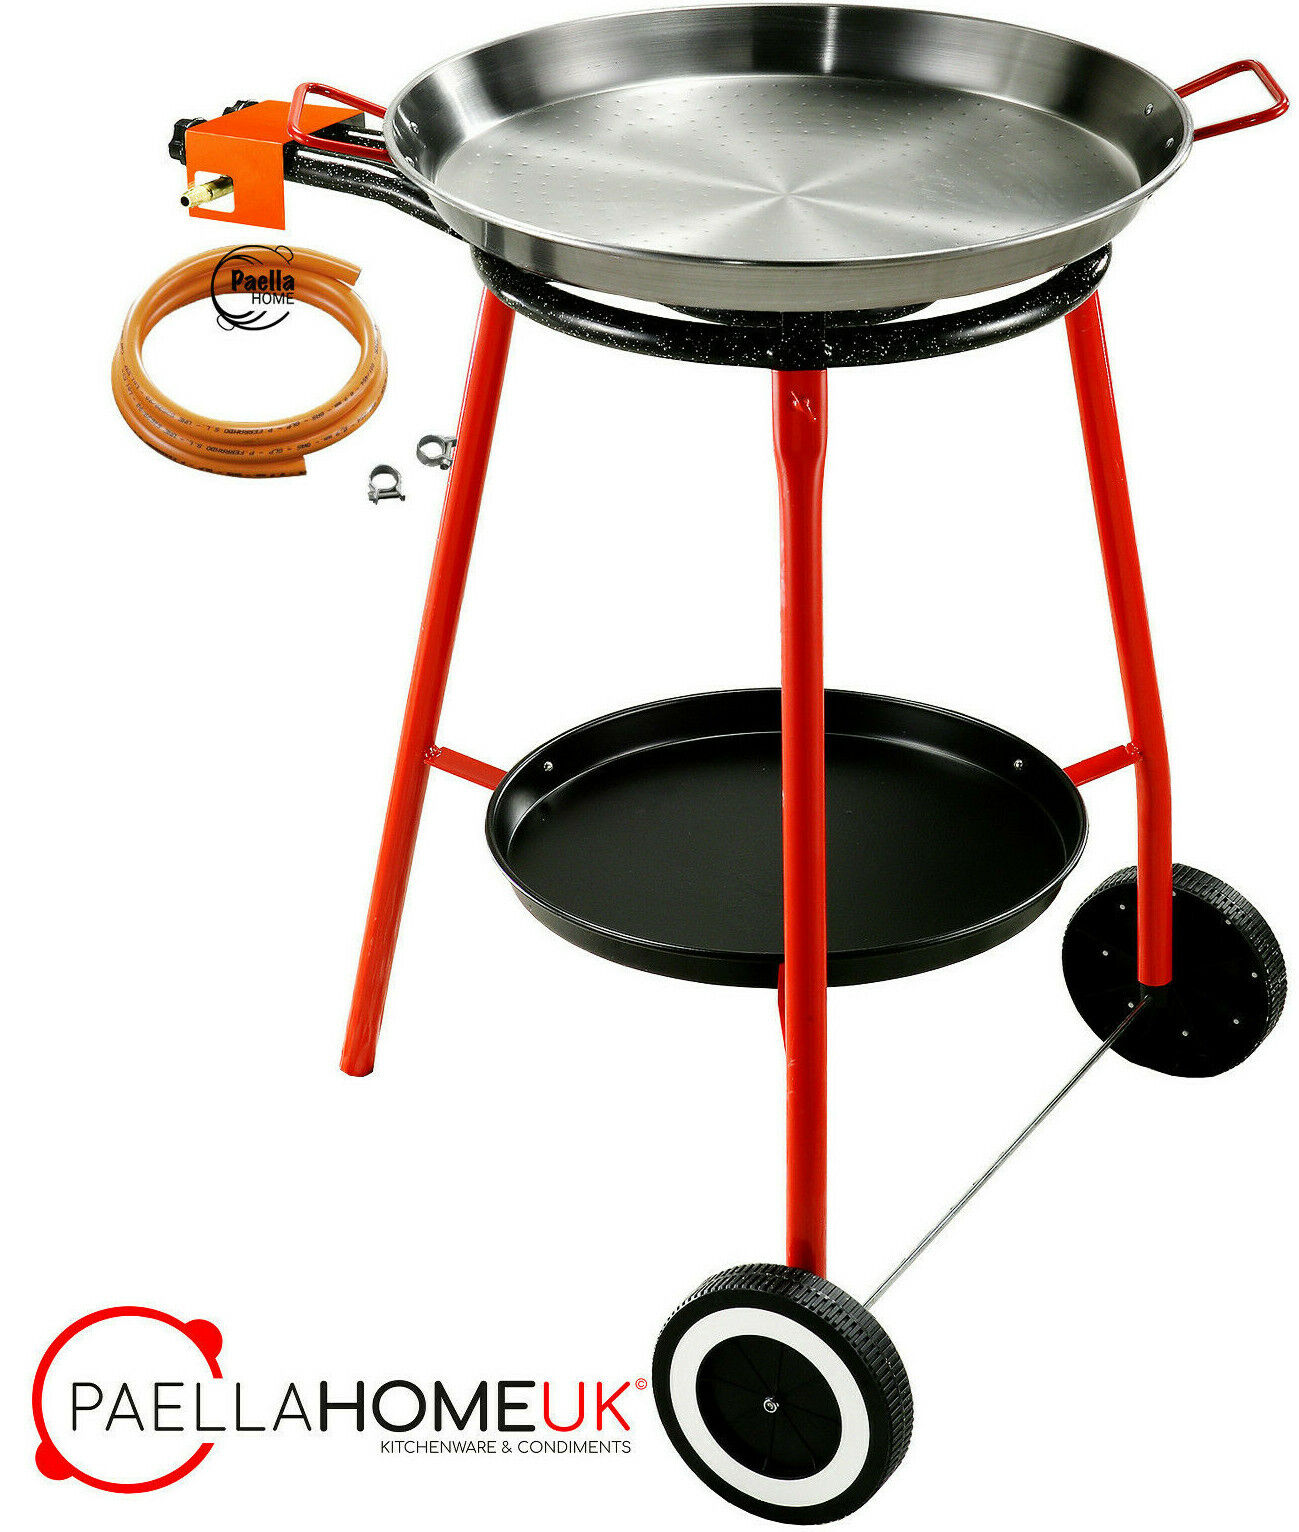 46cm Original Paella Pan Set + 40cm Gas Burner + Reinforced Tripod Legs on Weels